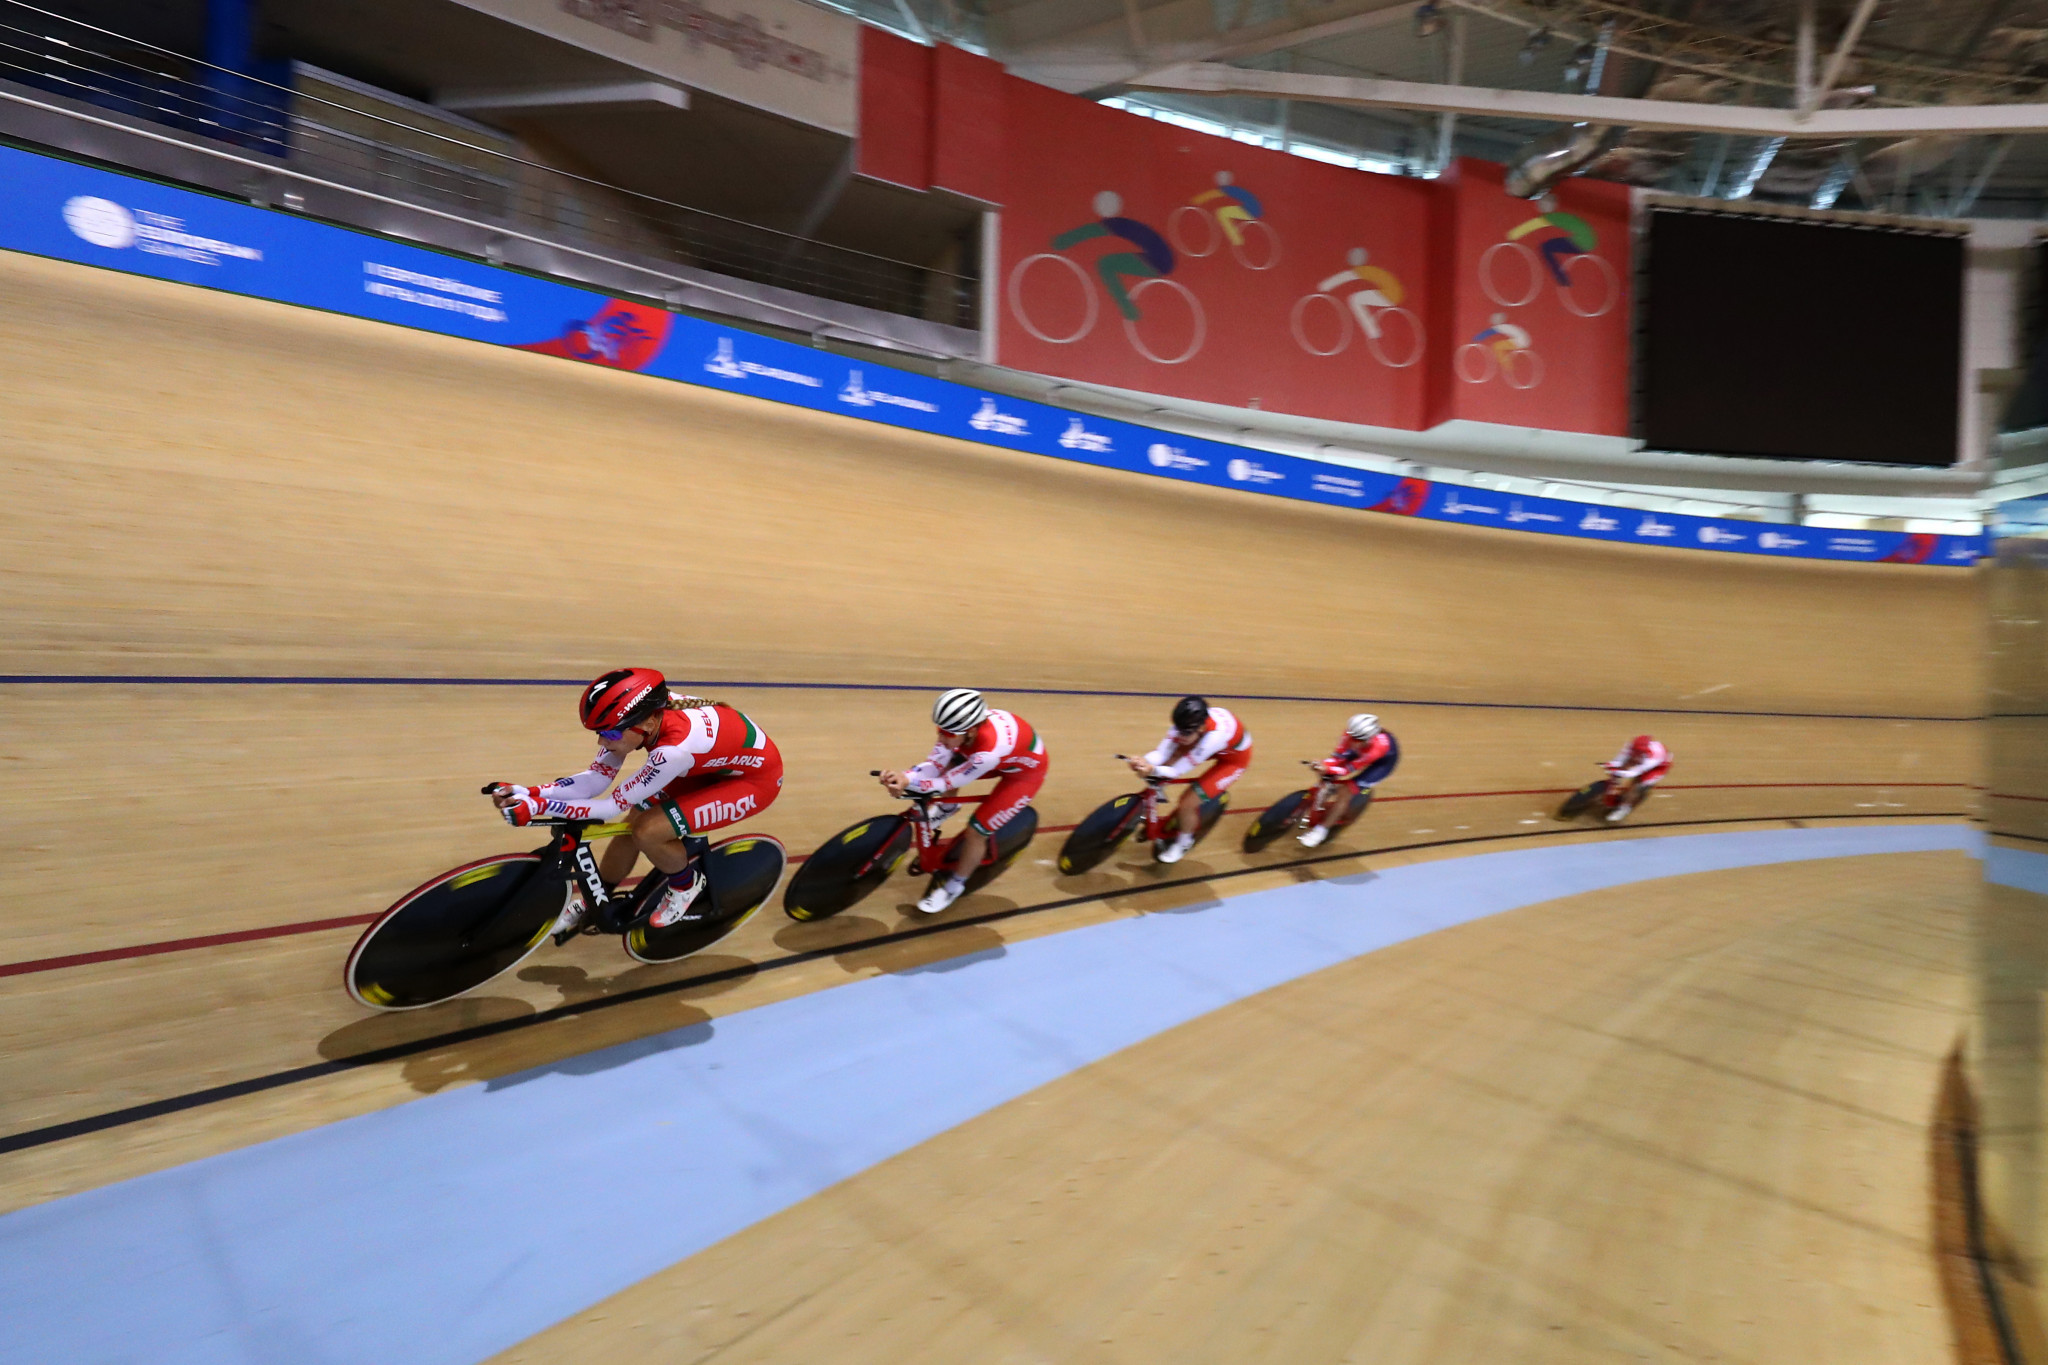 UEC cancels European Track Cycling Championships in Belarus as country faces international uproar